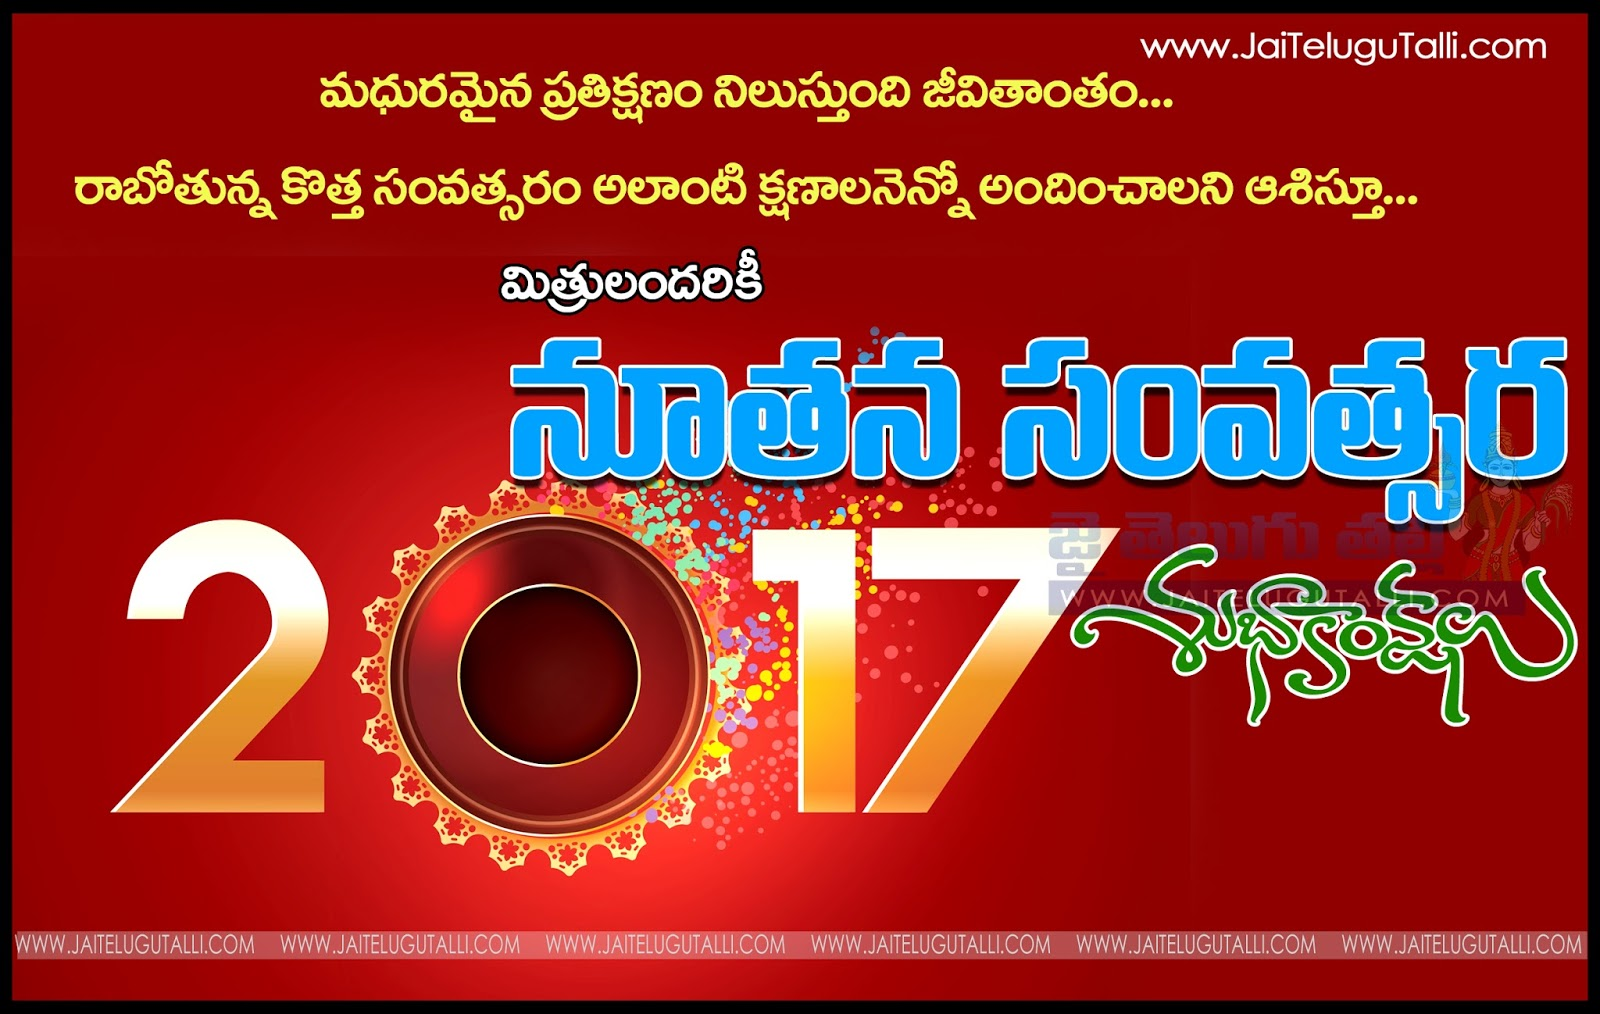 telugu new year saying view source